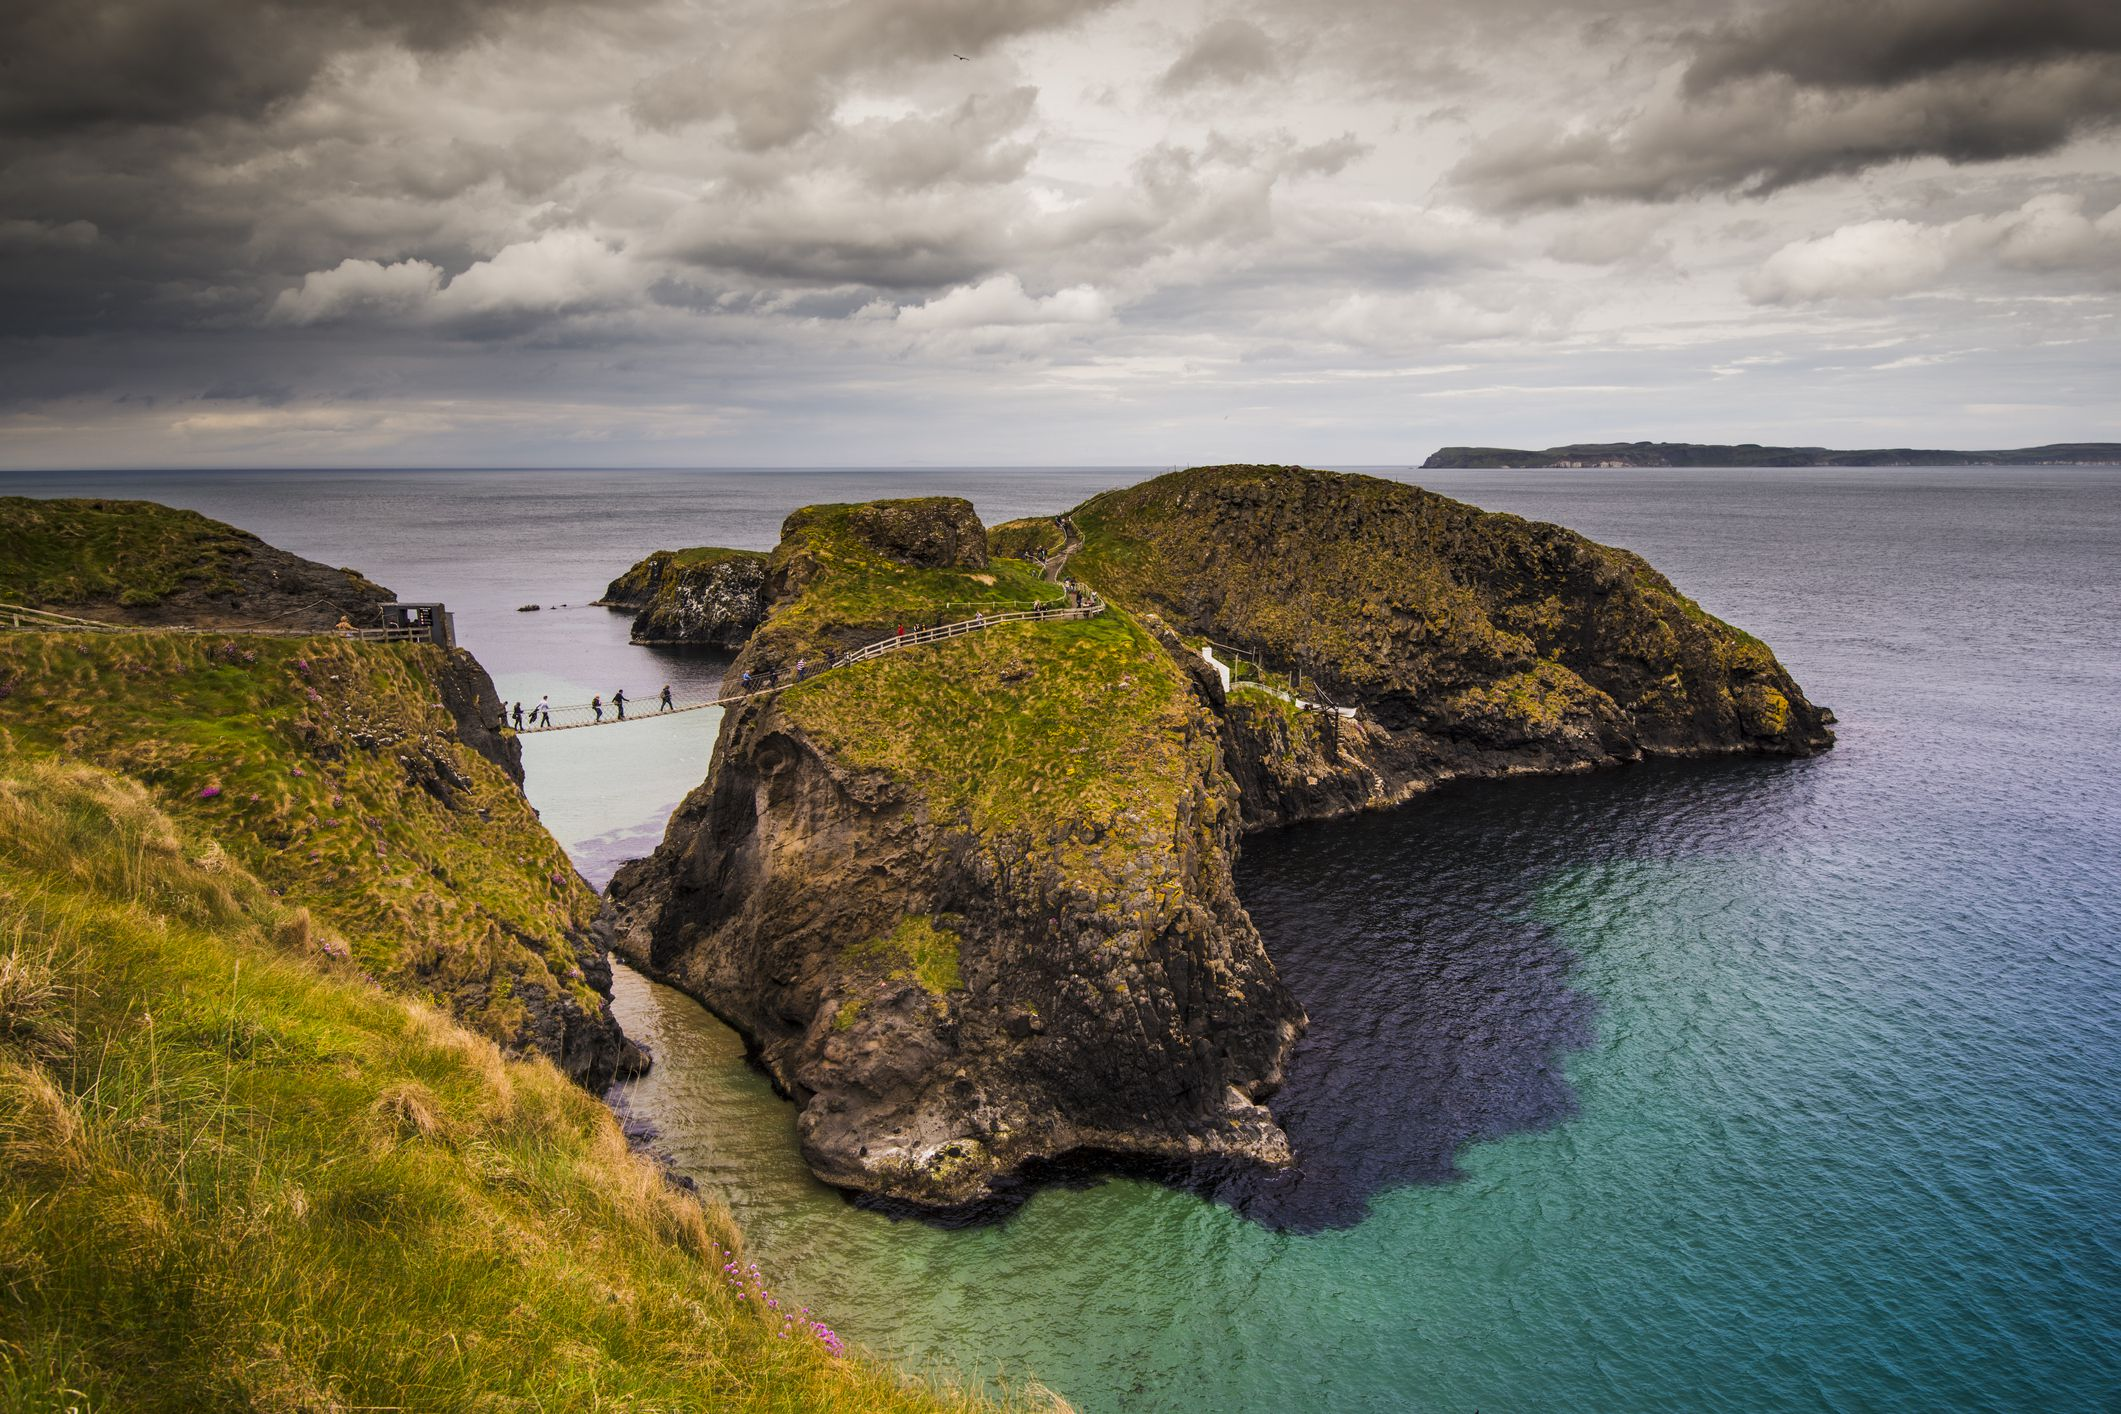 Carrick-a-Rede: Ireland's Exhilarating Rope Bridge